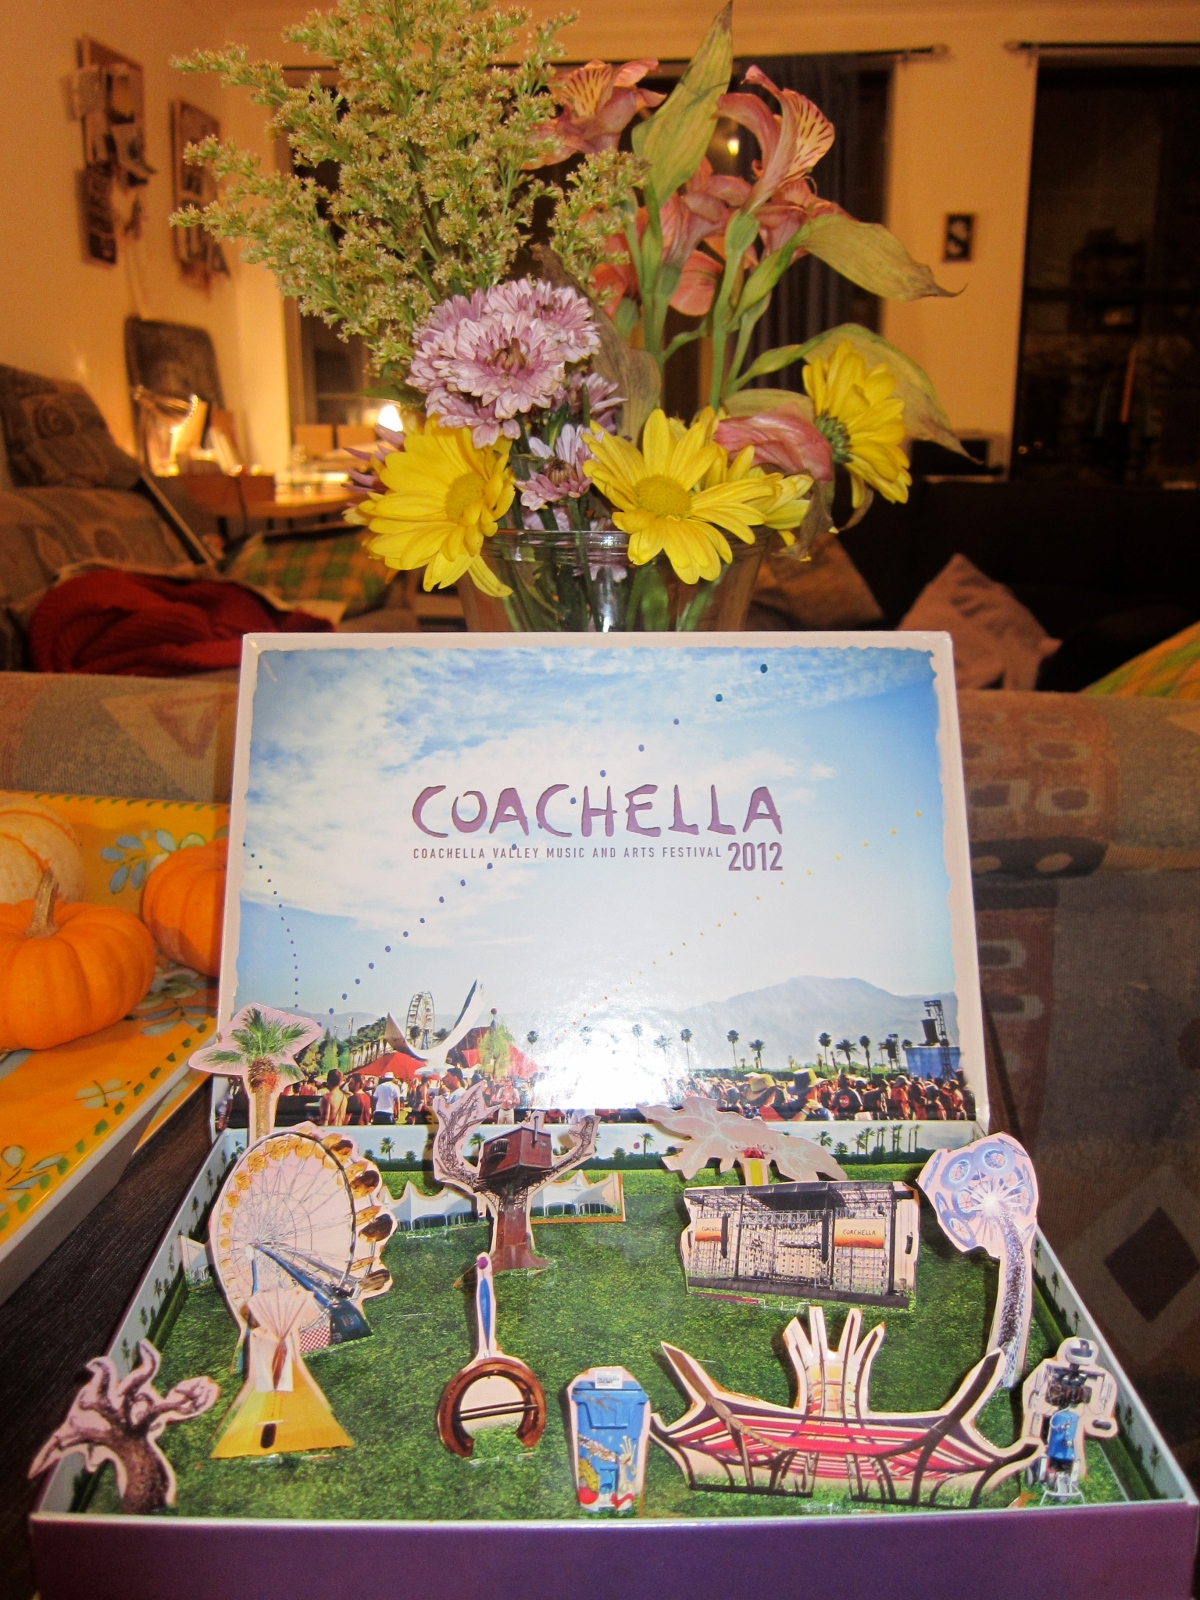 coachella ticket box, coachella valley music and arts festival, festival passes